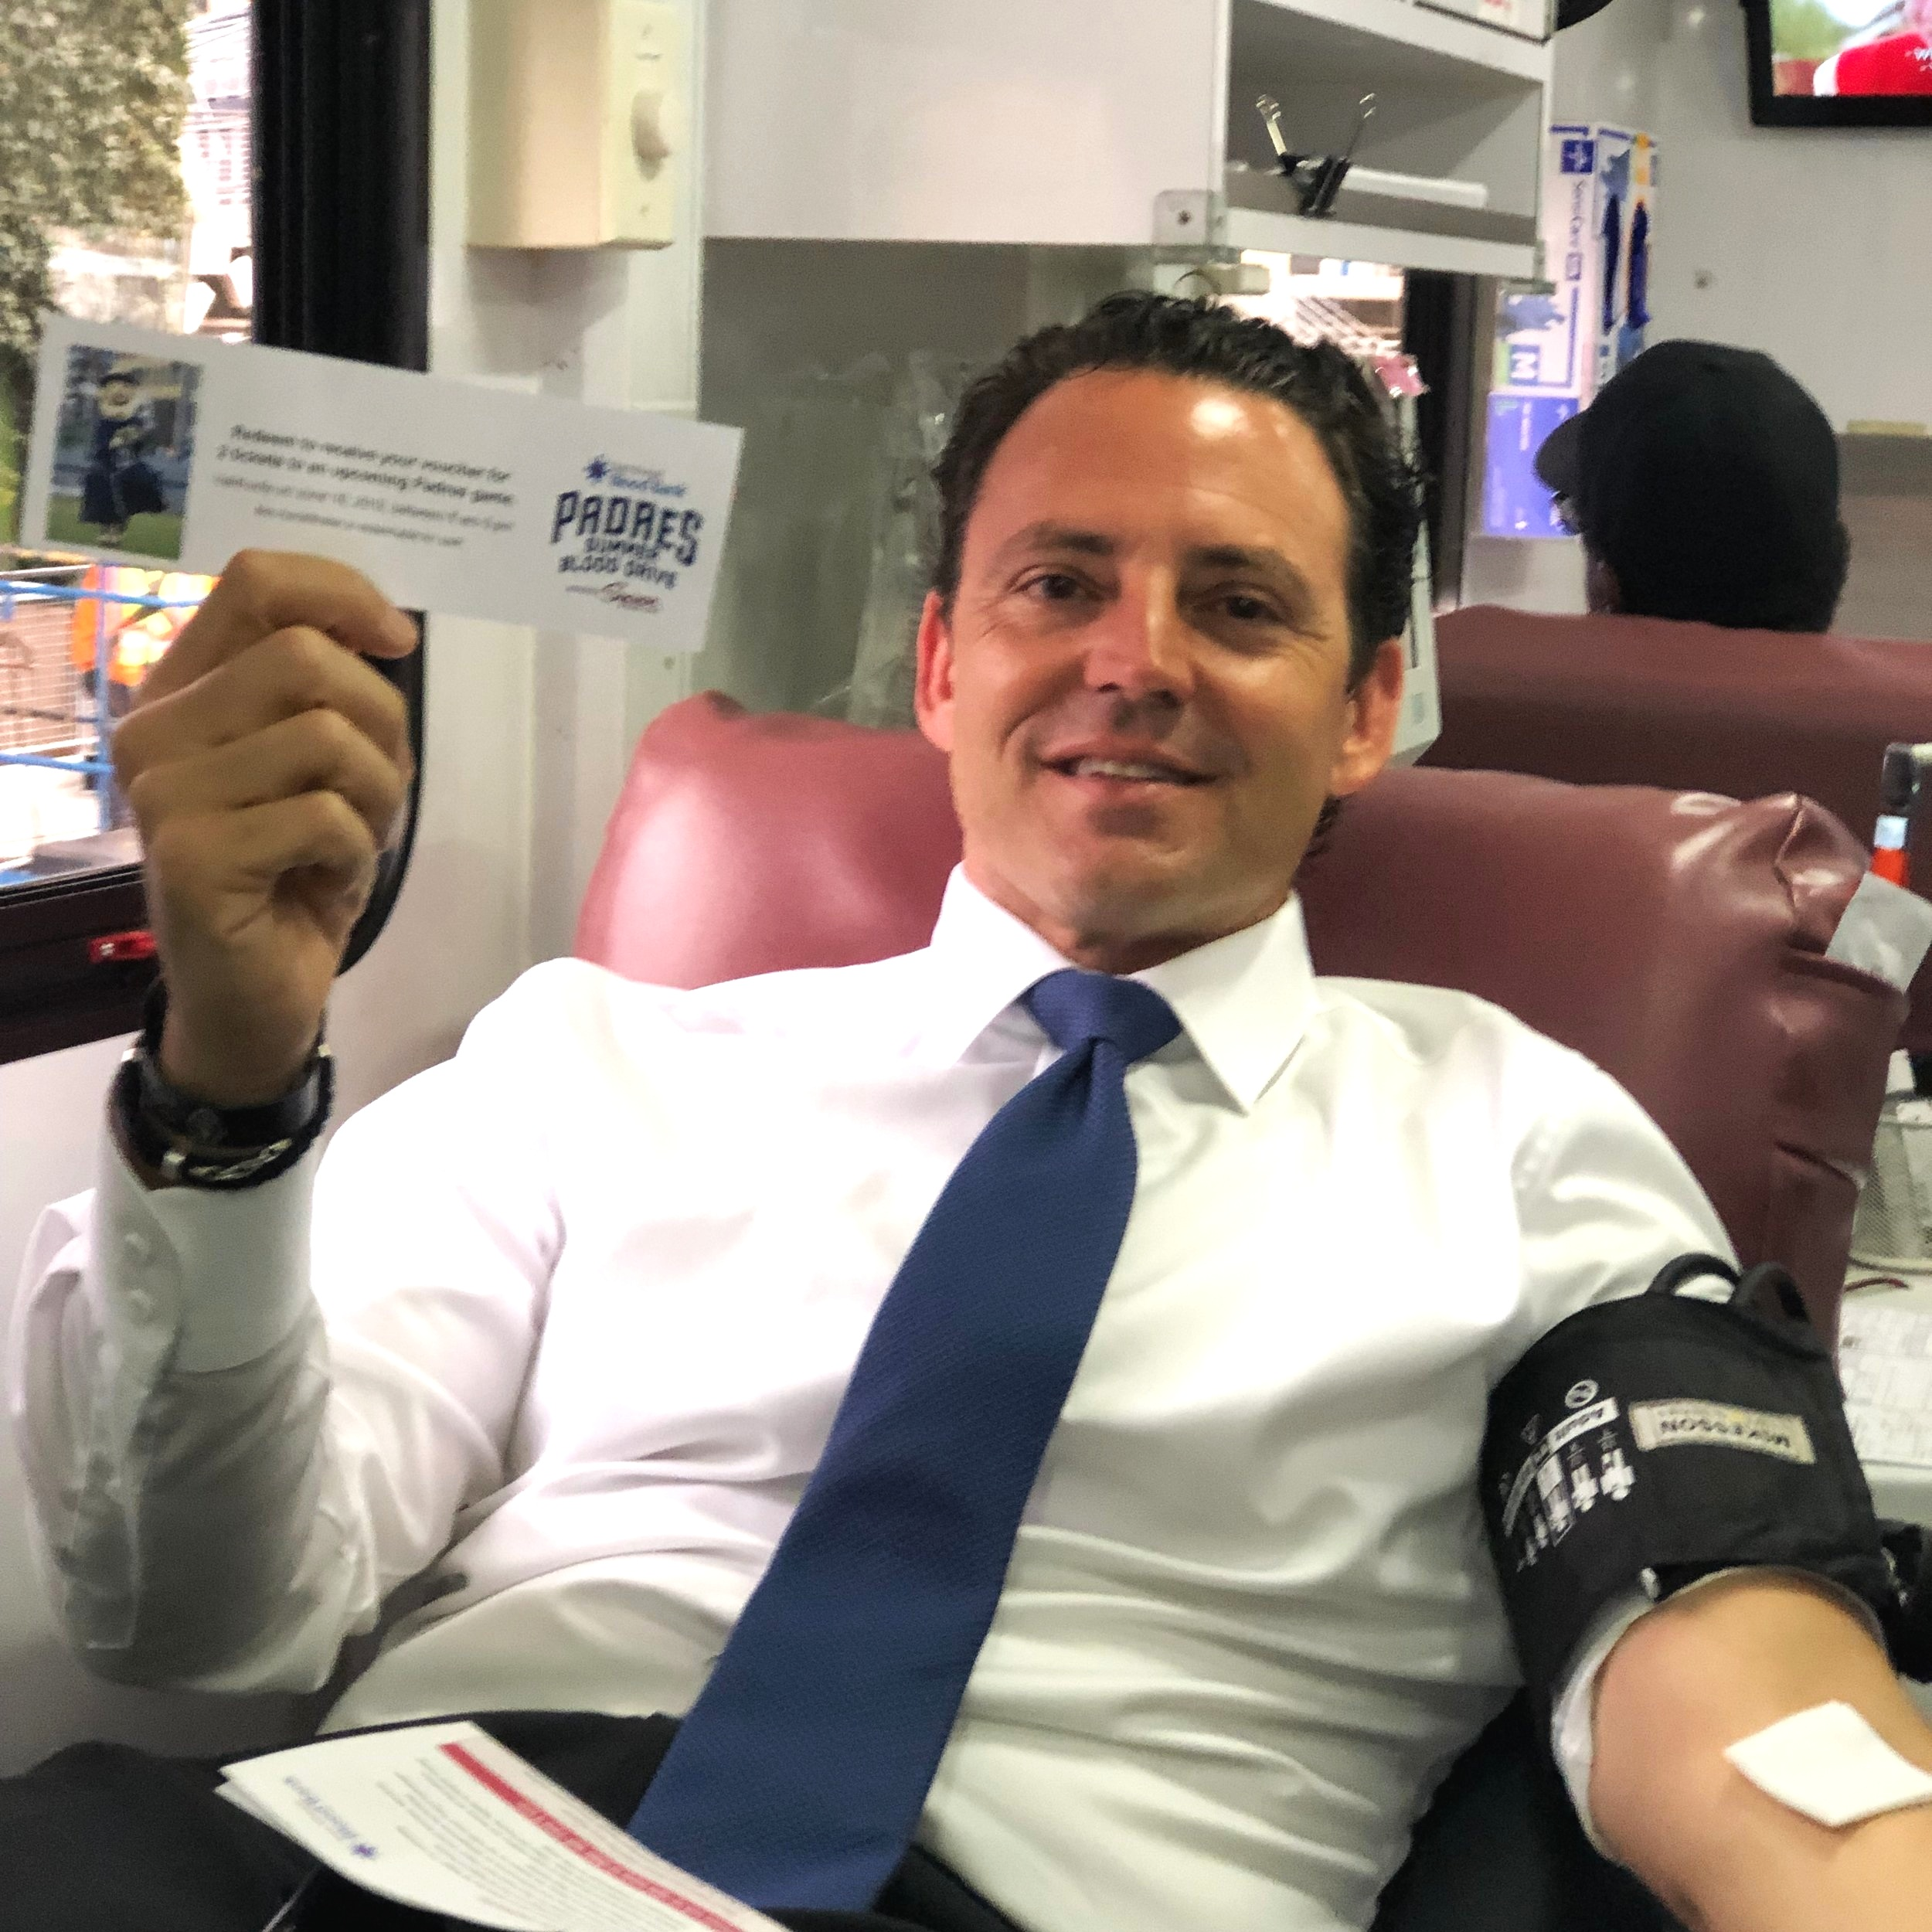 County Supervisor Nathan Fletcher stopped by, donated blood and received his voucher for a Padres game!